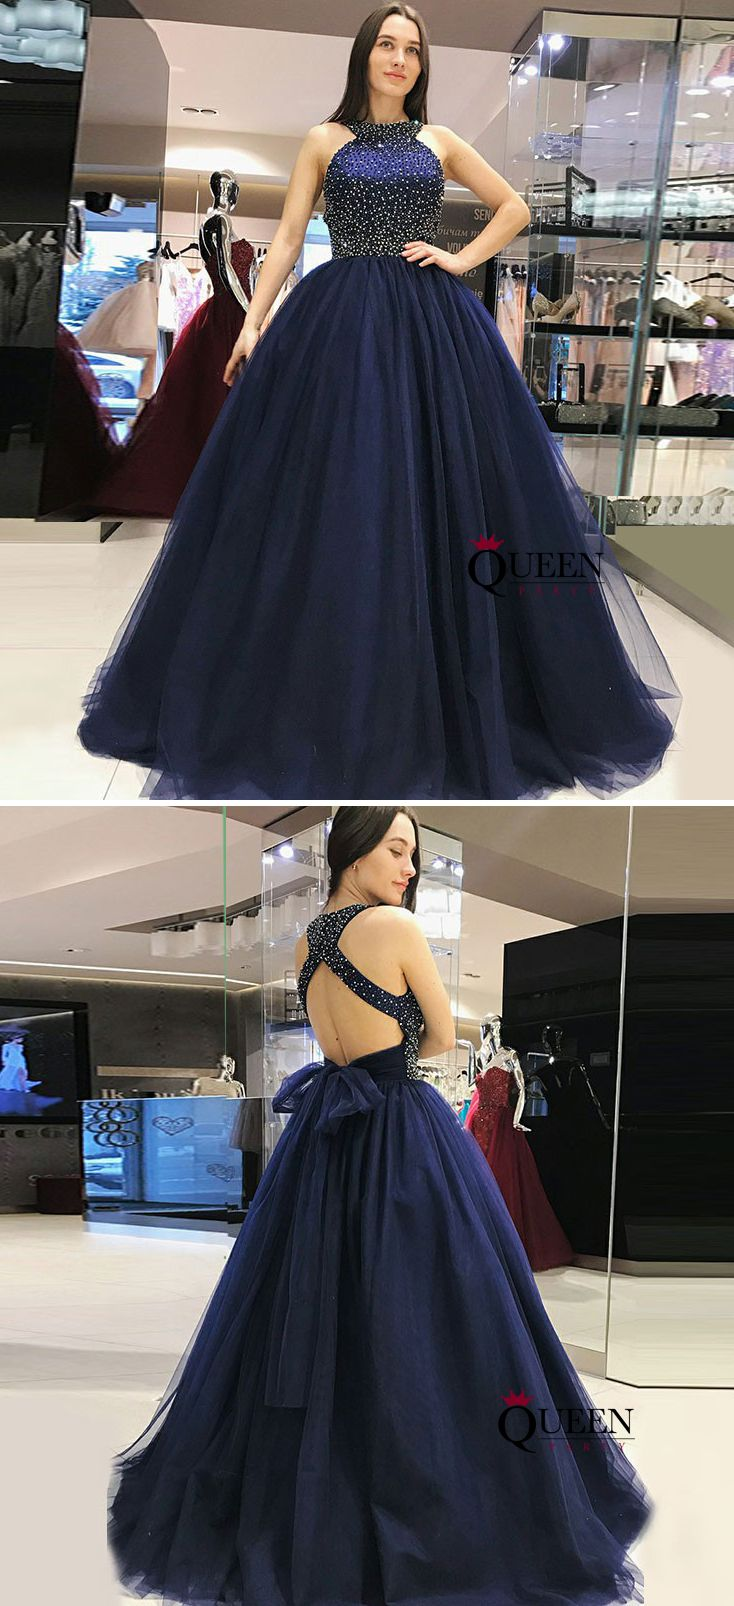 Brilliant Navy Blue Racer Neck Beading A Line Tulle Ball Gown Prom Dress From Queenparty Prom Dresses Ball Gown Ball Gowns Tulle Ball Gown